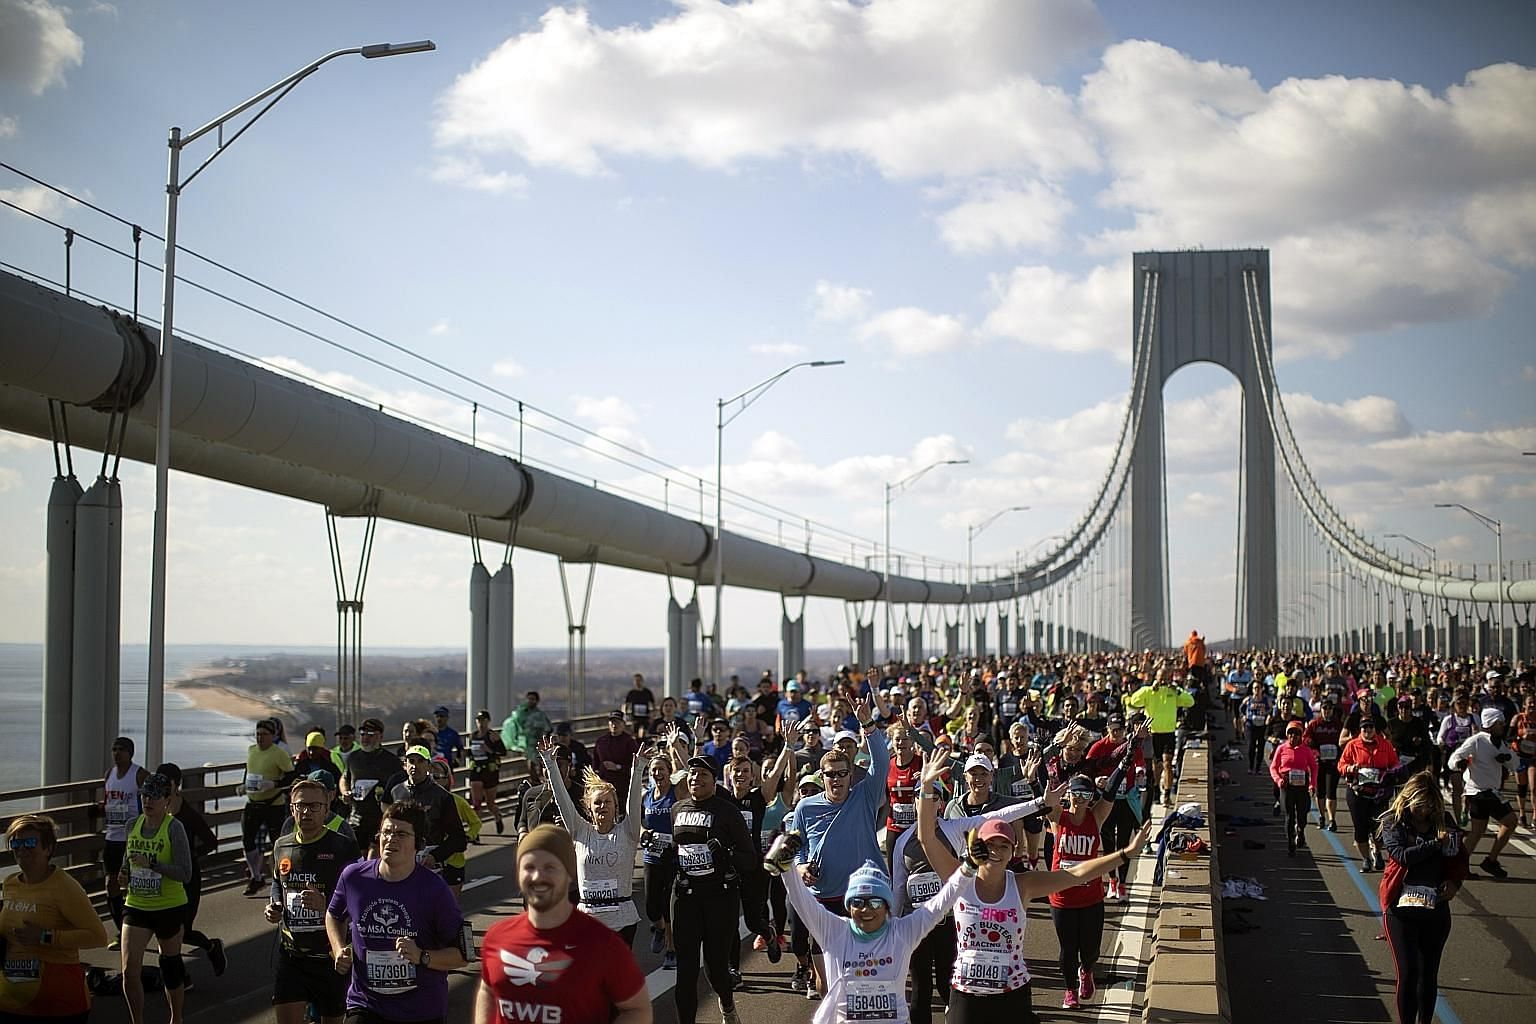 Runners crossing the iconic Verrazzano-Narrows Bridge during last year's New York City Marathon. The world's largest marathon was cancelled due to concerns about holding the race while coronavirus infection remains a risk in the city and elsewhere. P